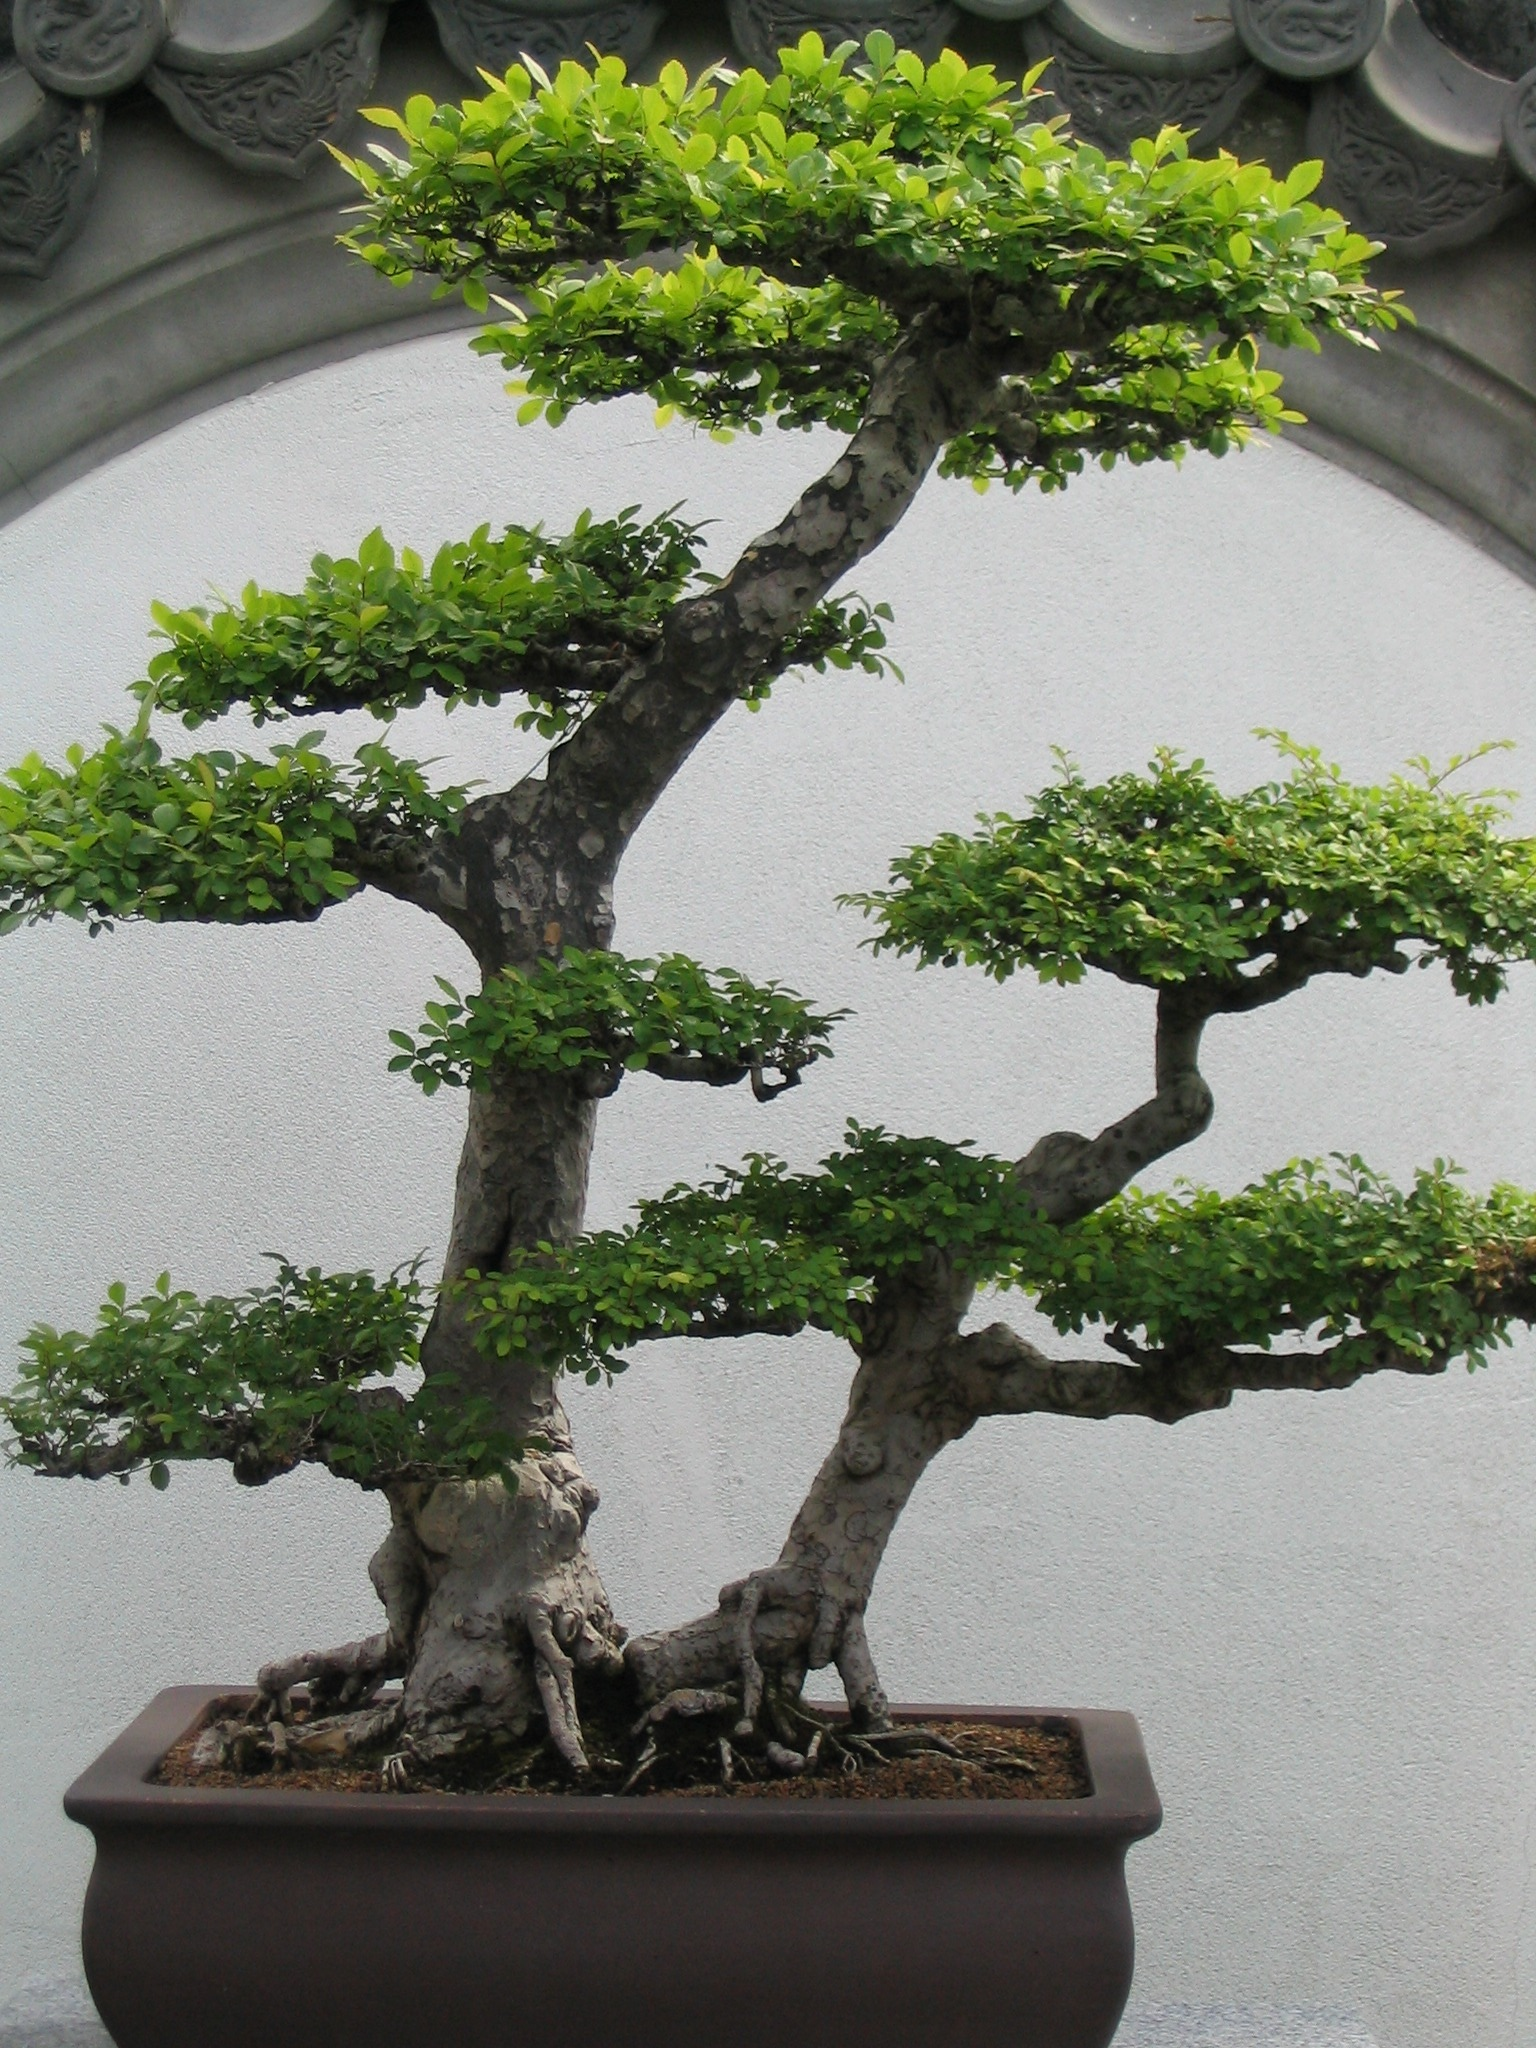 Small Bonsai Tree Potted Plant Free Image